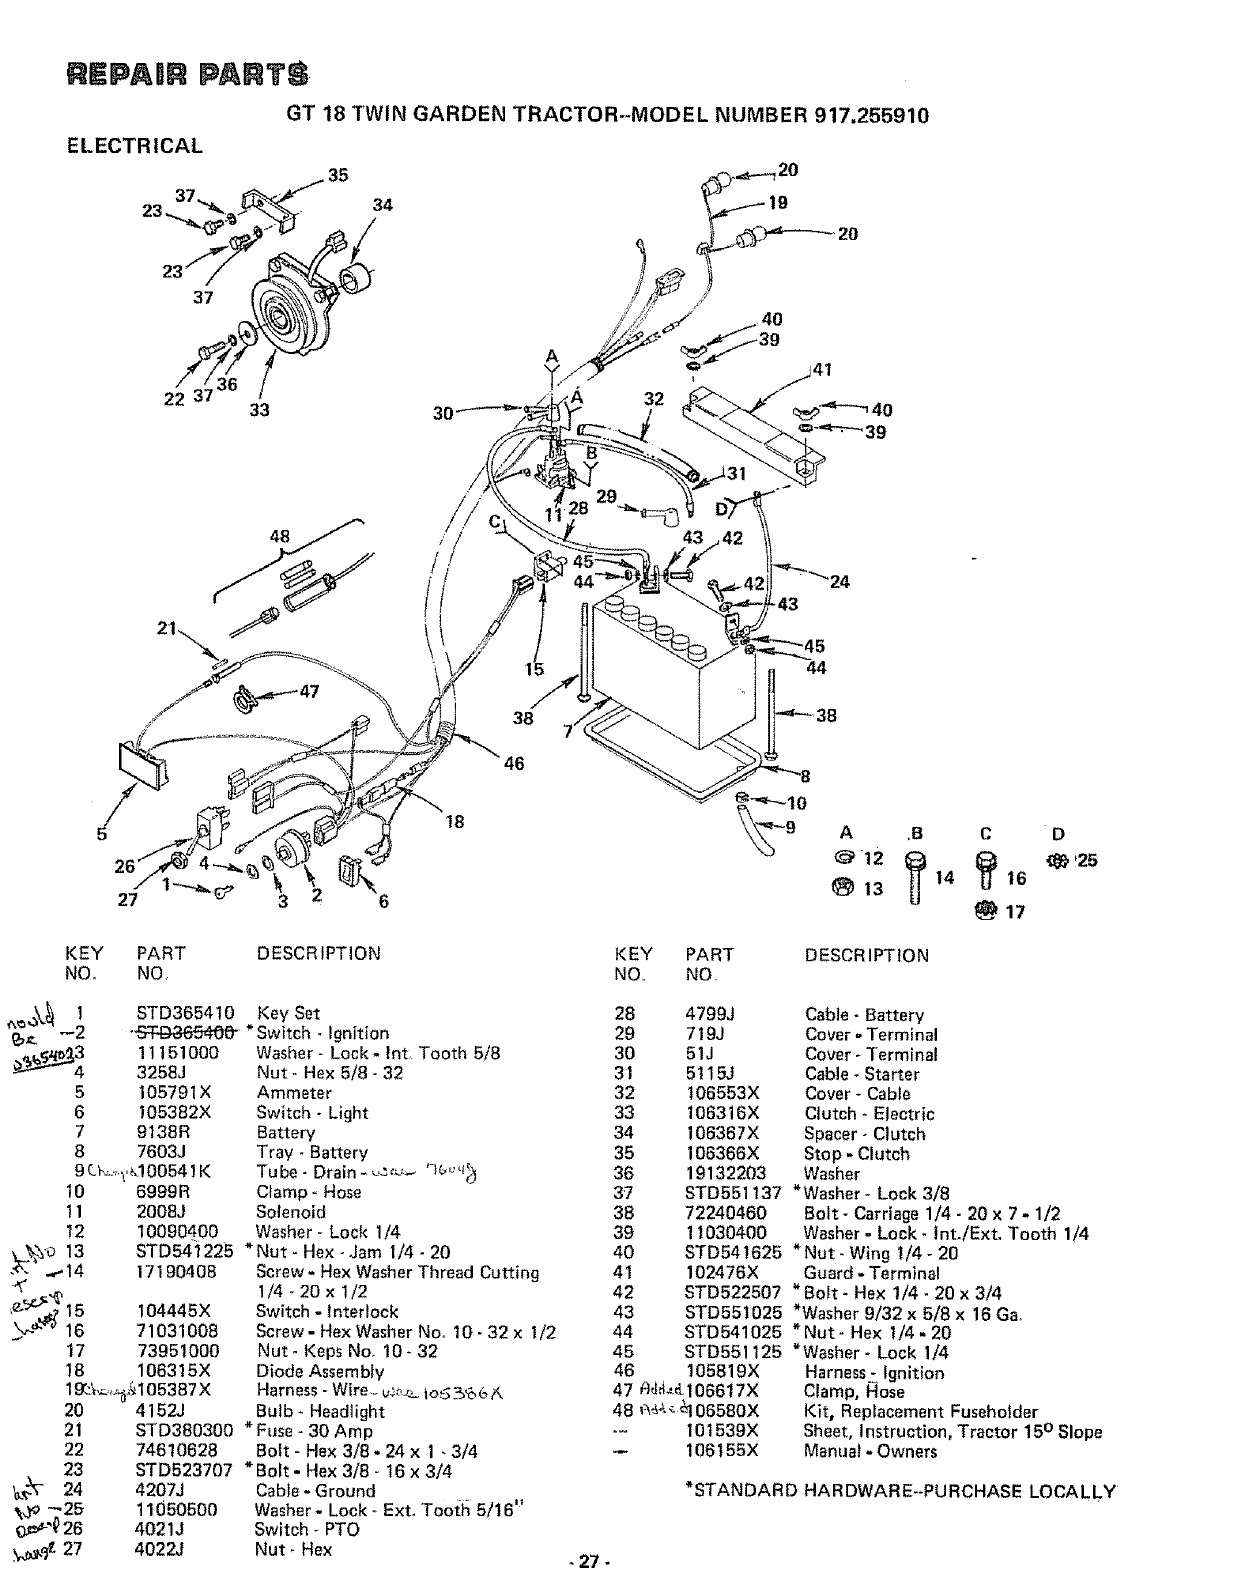 Page 27 of Sears Lawn Mower 917.25591 User Guide